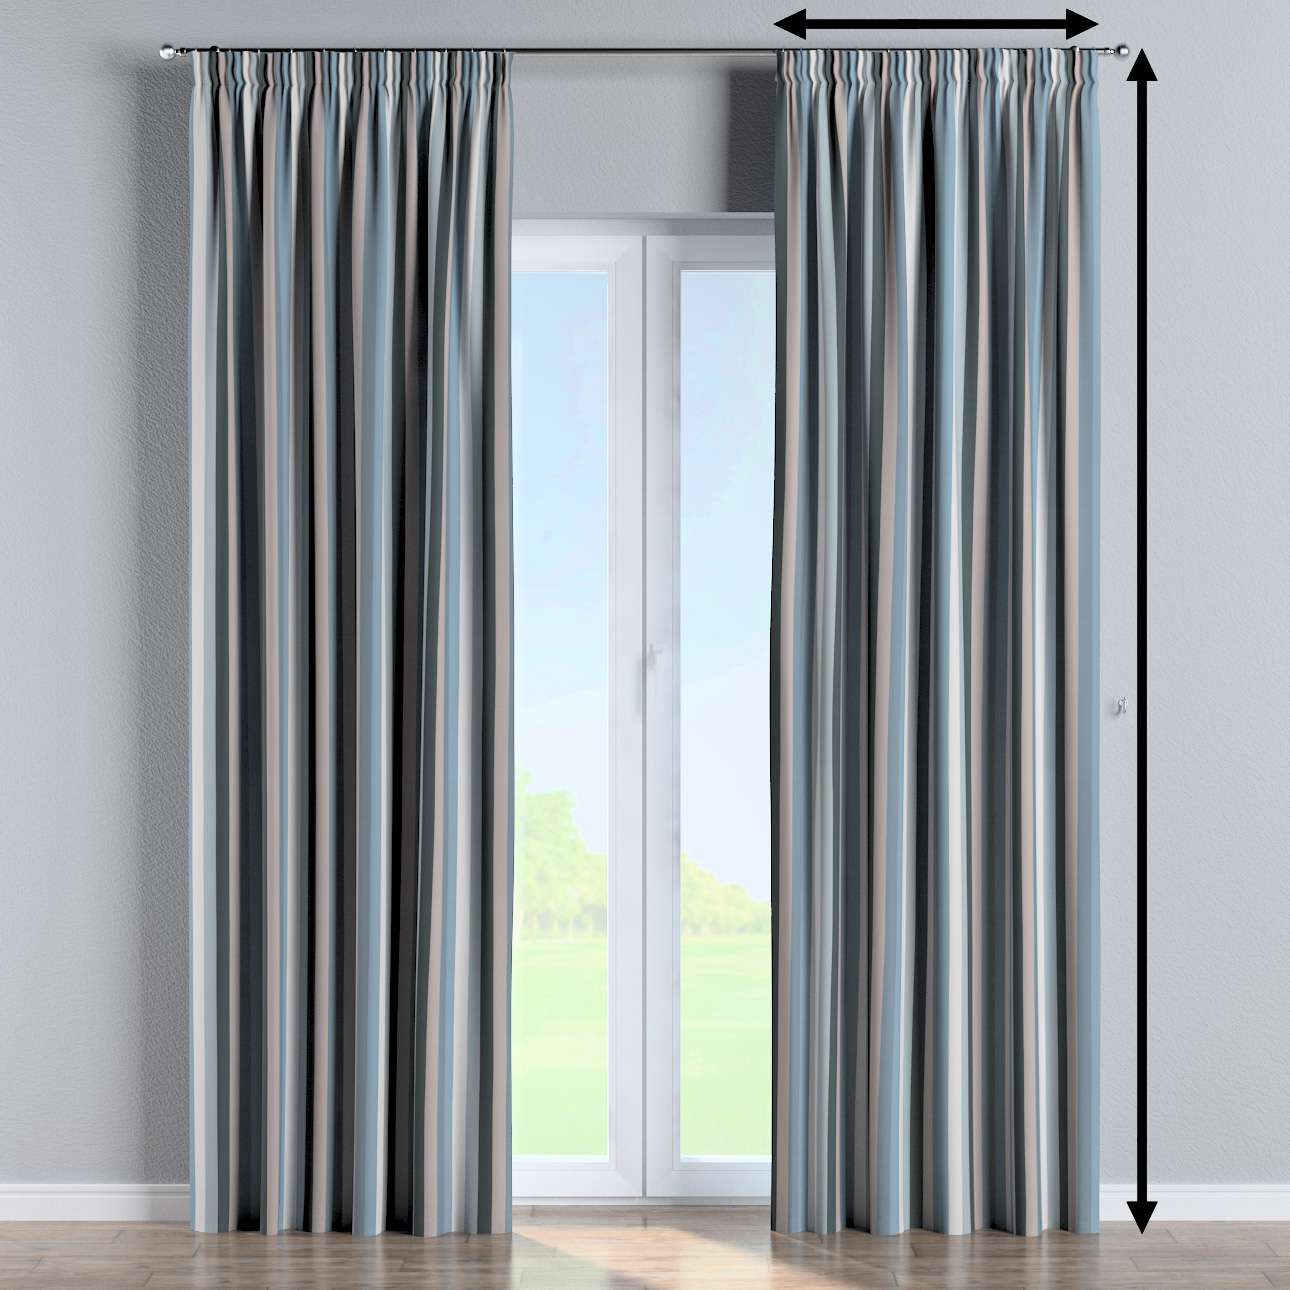 Pencil pleat curtain in collection Vintage 70's, fabric: 143-57